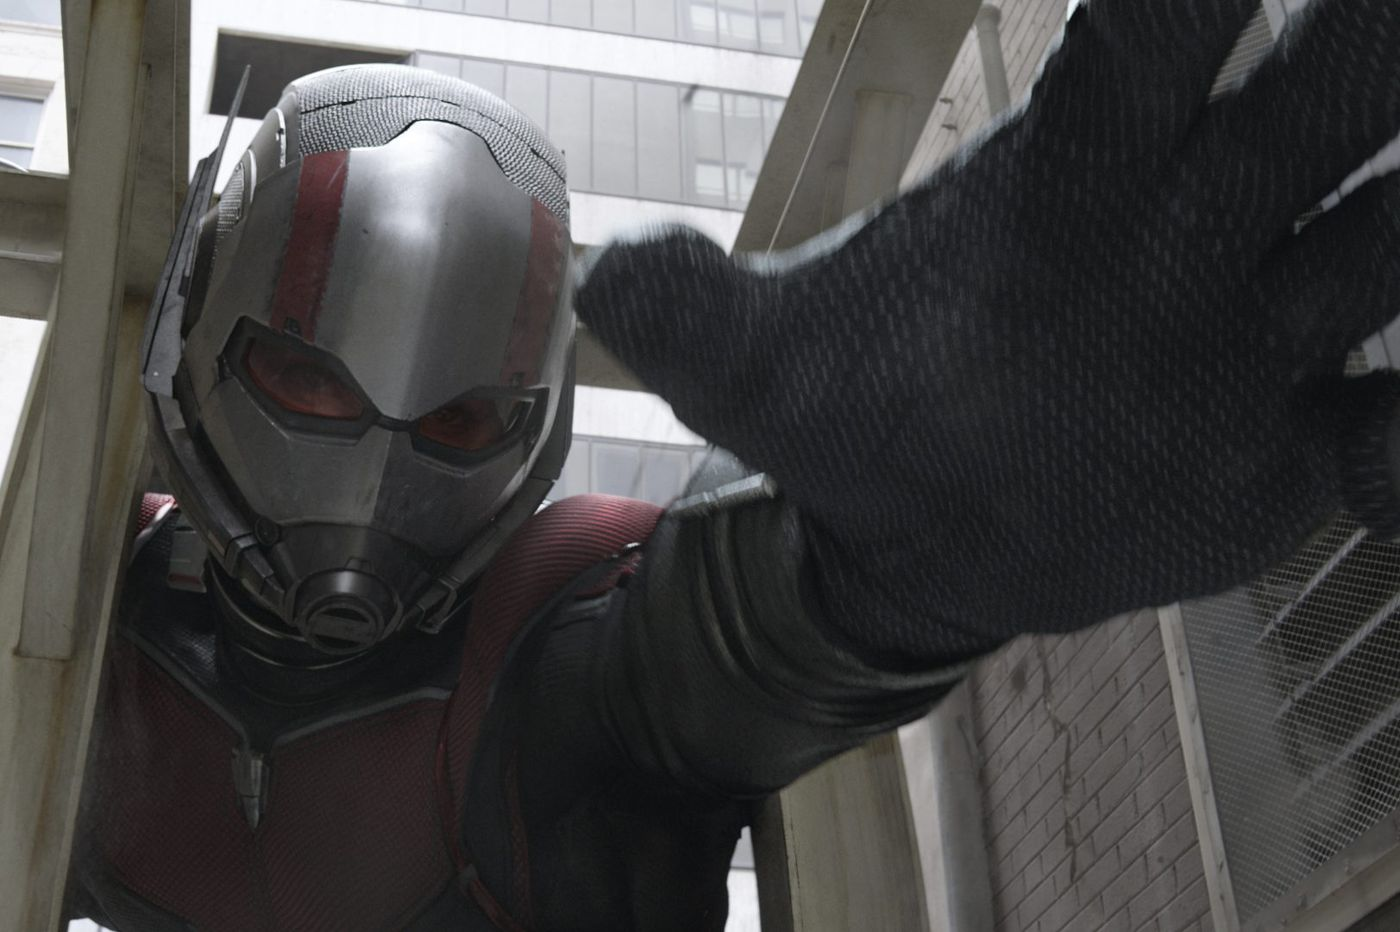 Marvel's 'Ant-Man and the Wasp' was written by a Germantown Academy grad